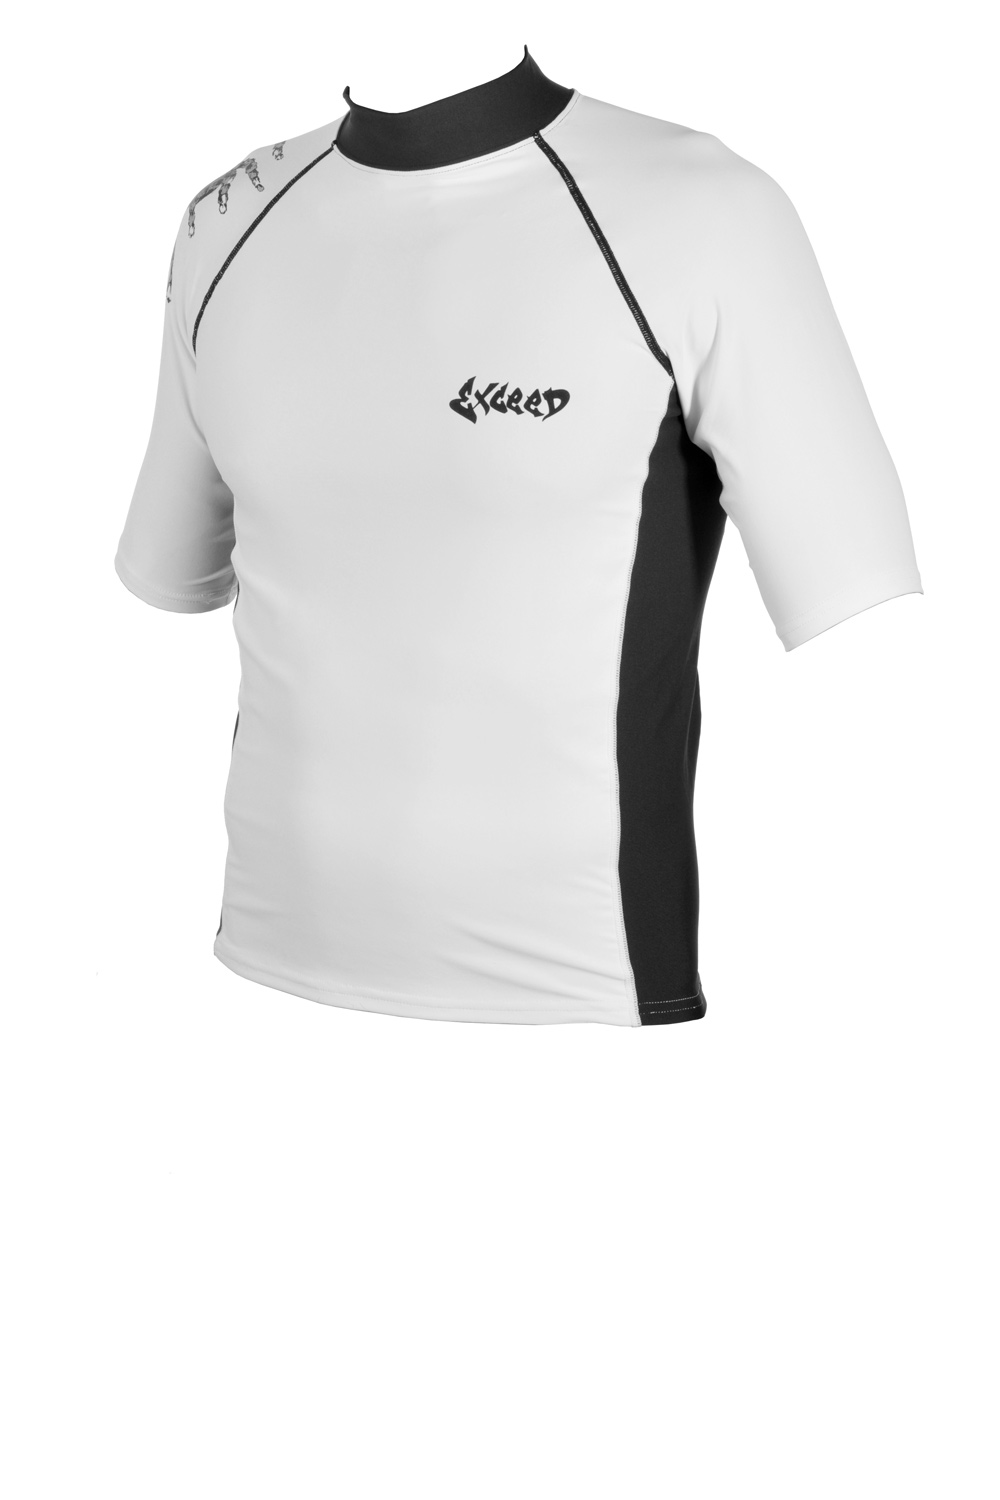 Exceed Entrap S/S Mens Short Sleeve Rash Guard